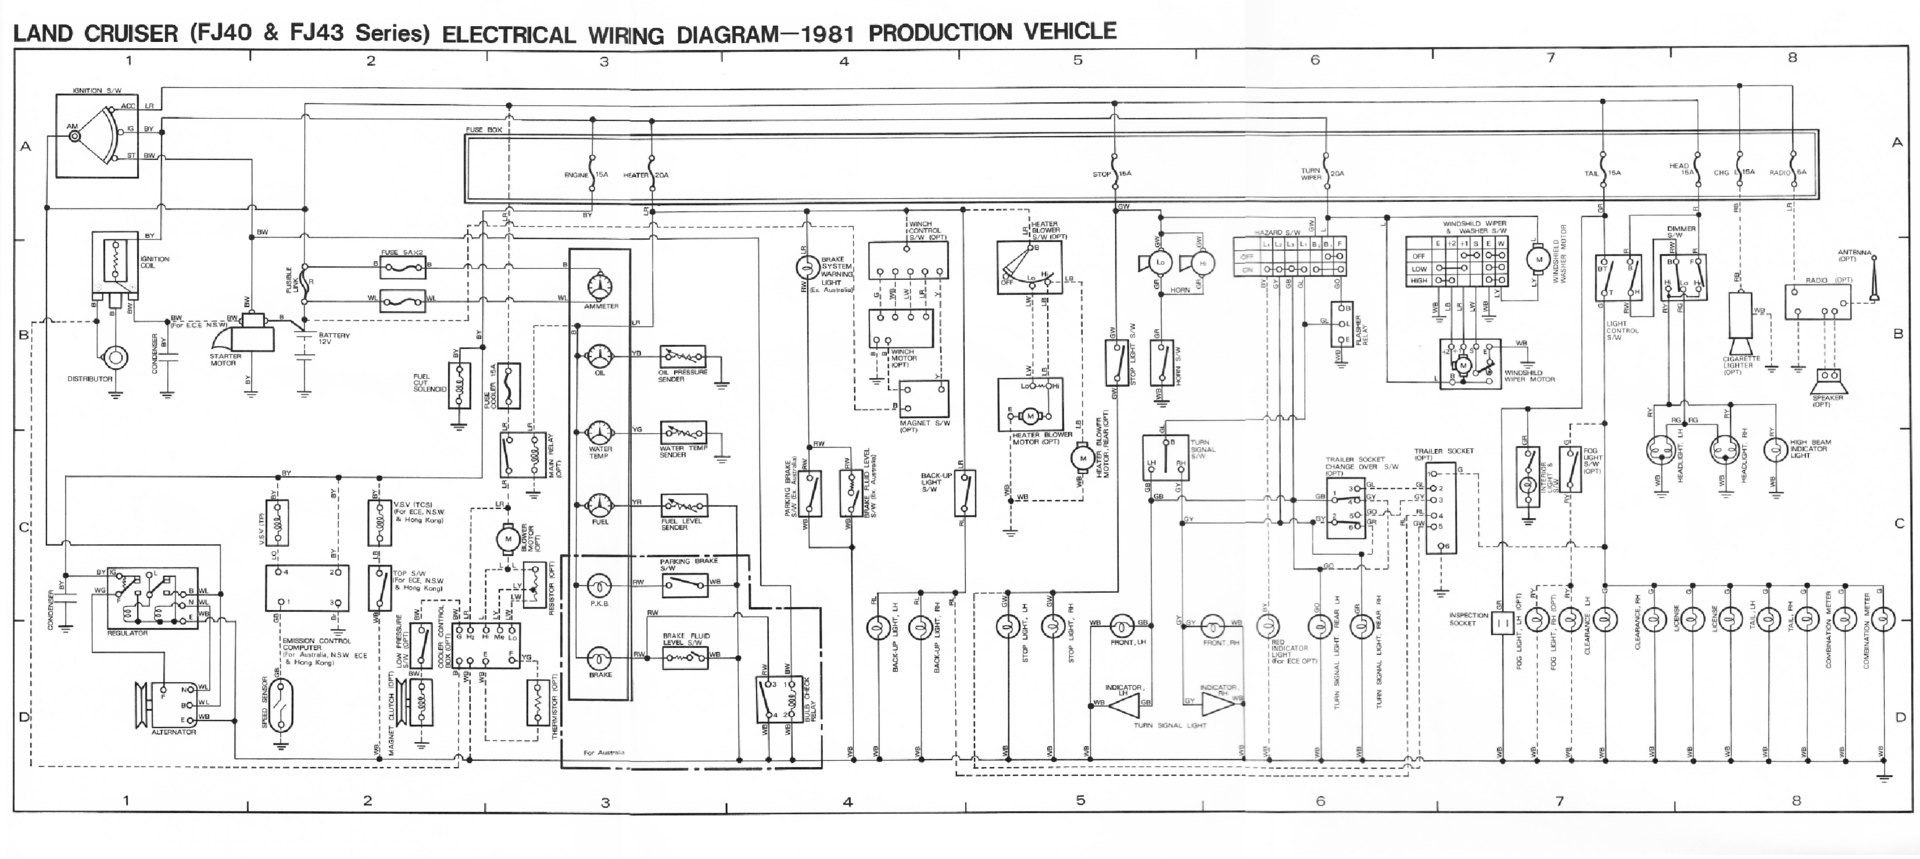 DIAGRAM] Wiring Diagram Toyota Landcruiser 40 Series FULL Version ...